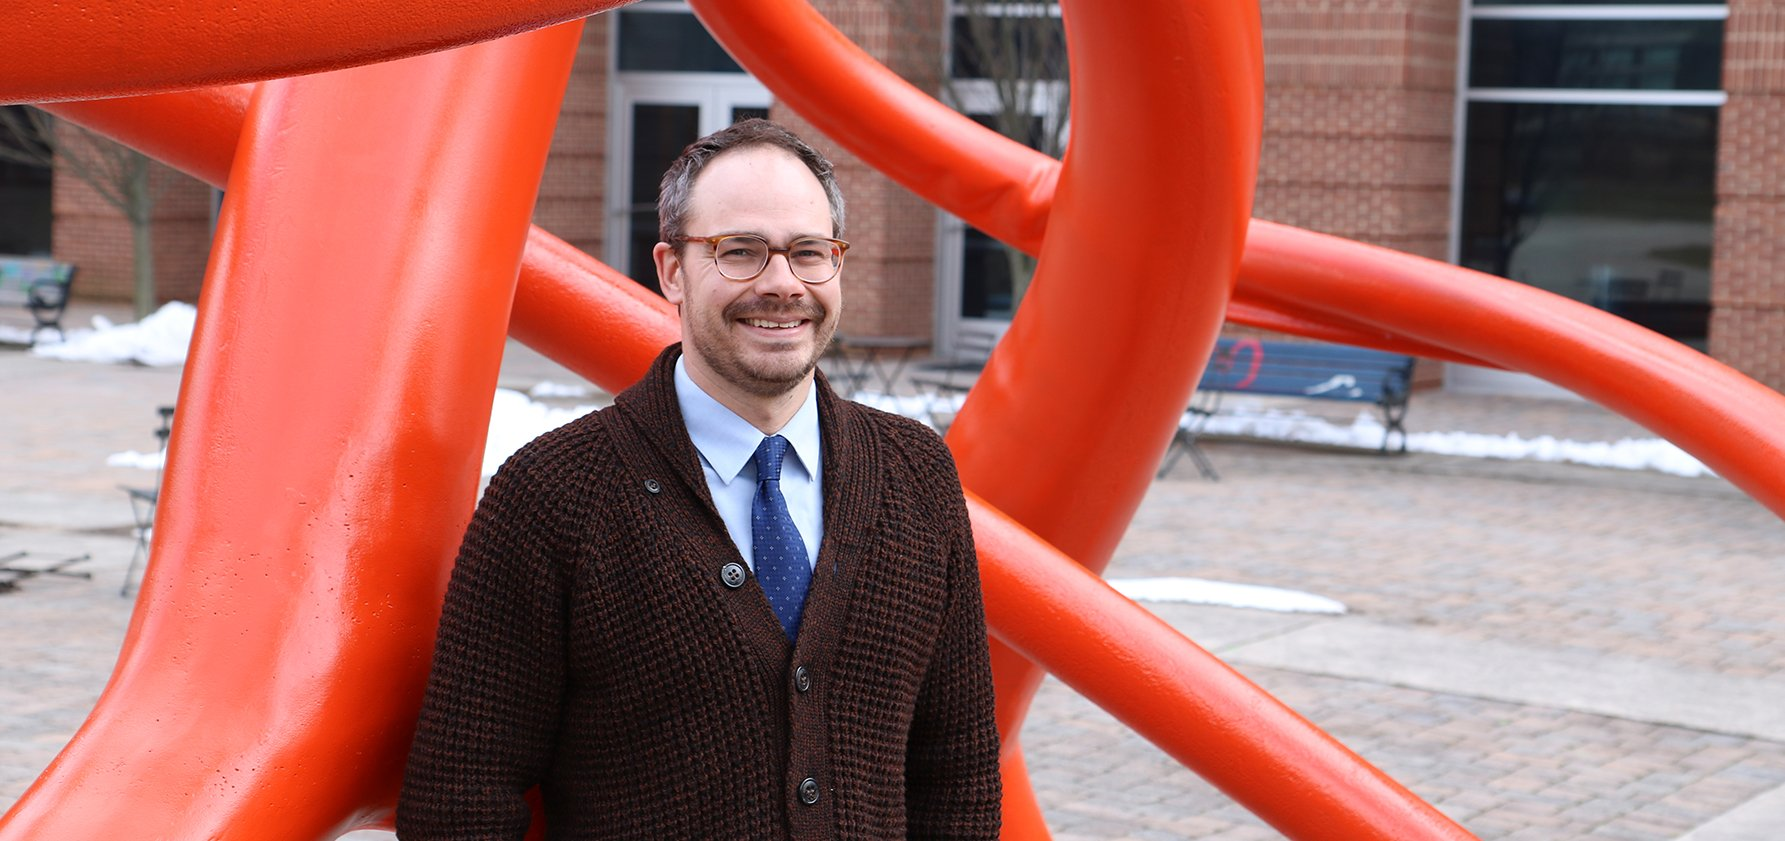 An Interview with Dr. Gleason, Director of Graduate Education Programs